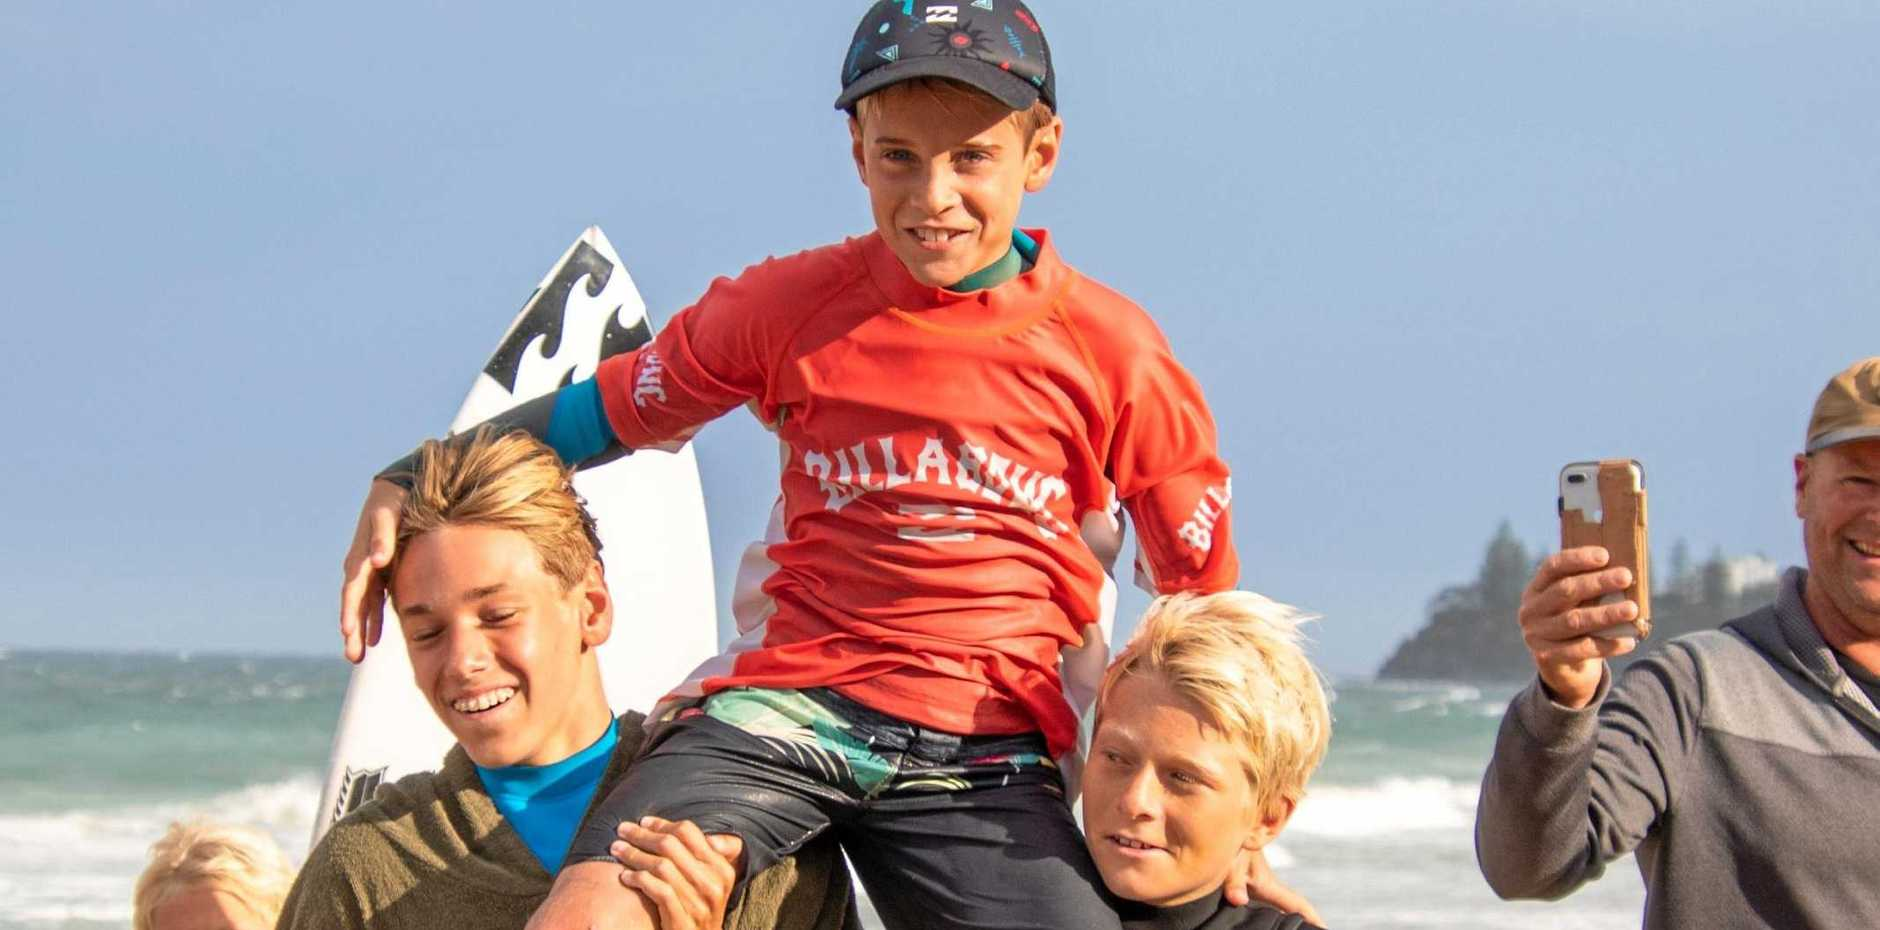 Evans Head surfer Max McGillivray is chaired up the beach after winning the under-12 boys division of the Billabong Parko's Grom Stomp.